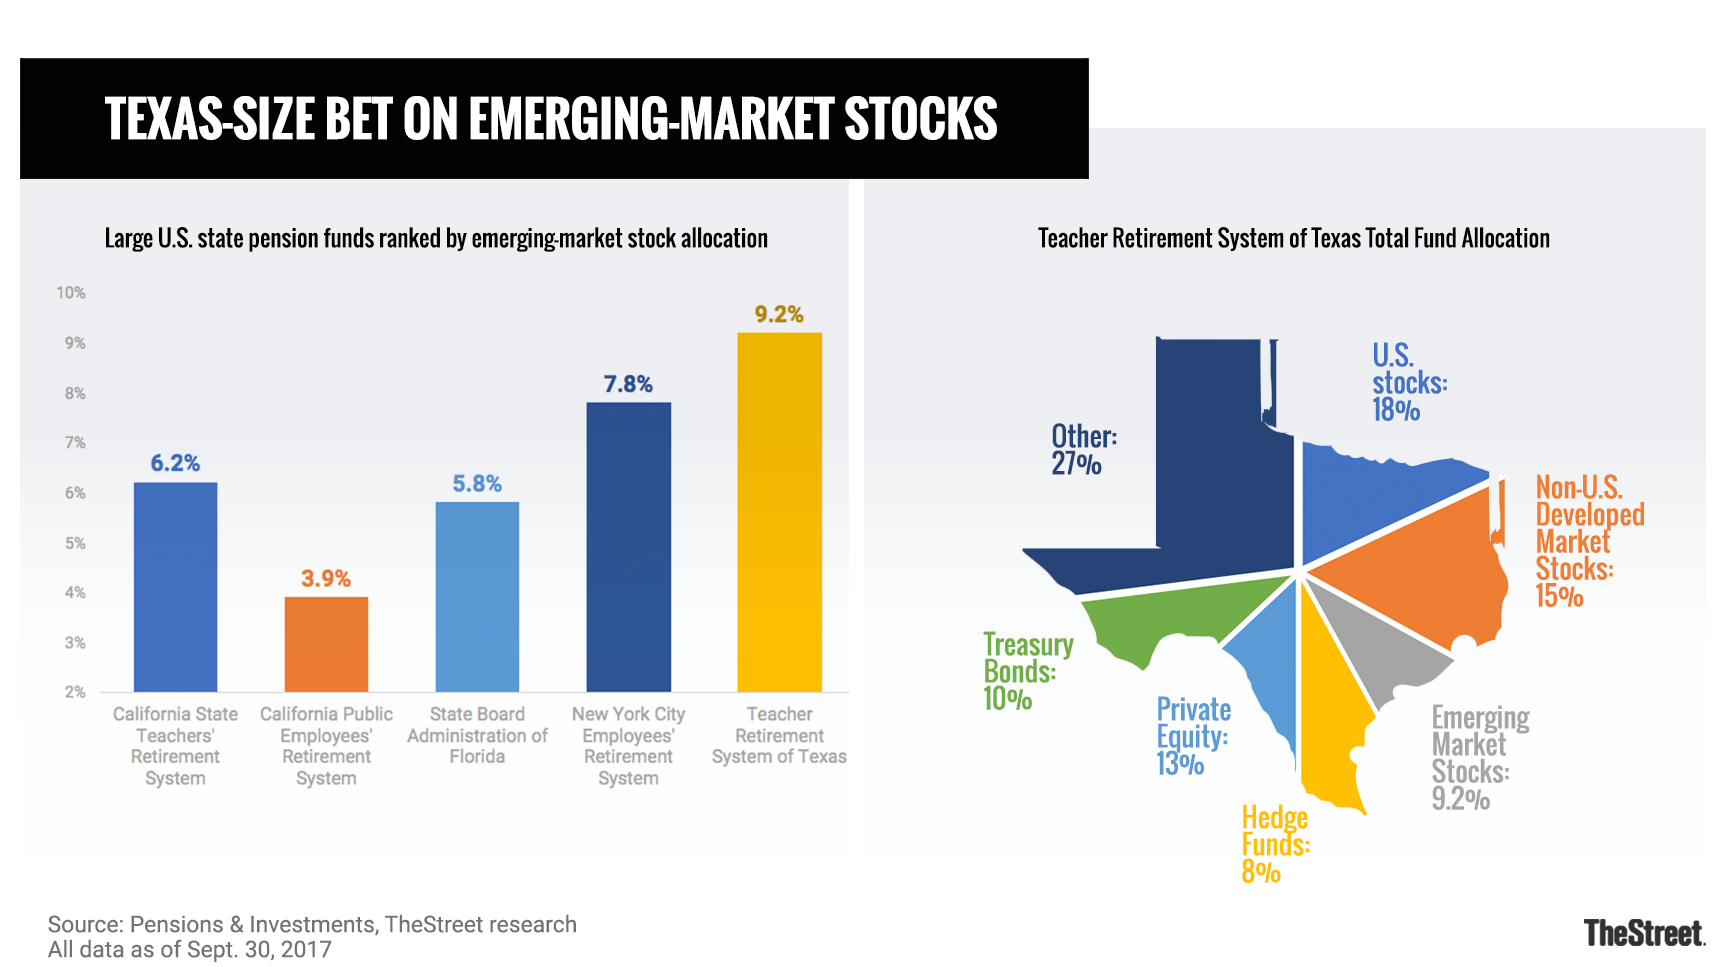 Charts showing the relative size of the emerging-market stock portfolio held by the Teacher Retirement System of Texas.